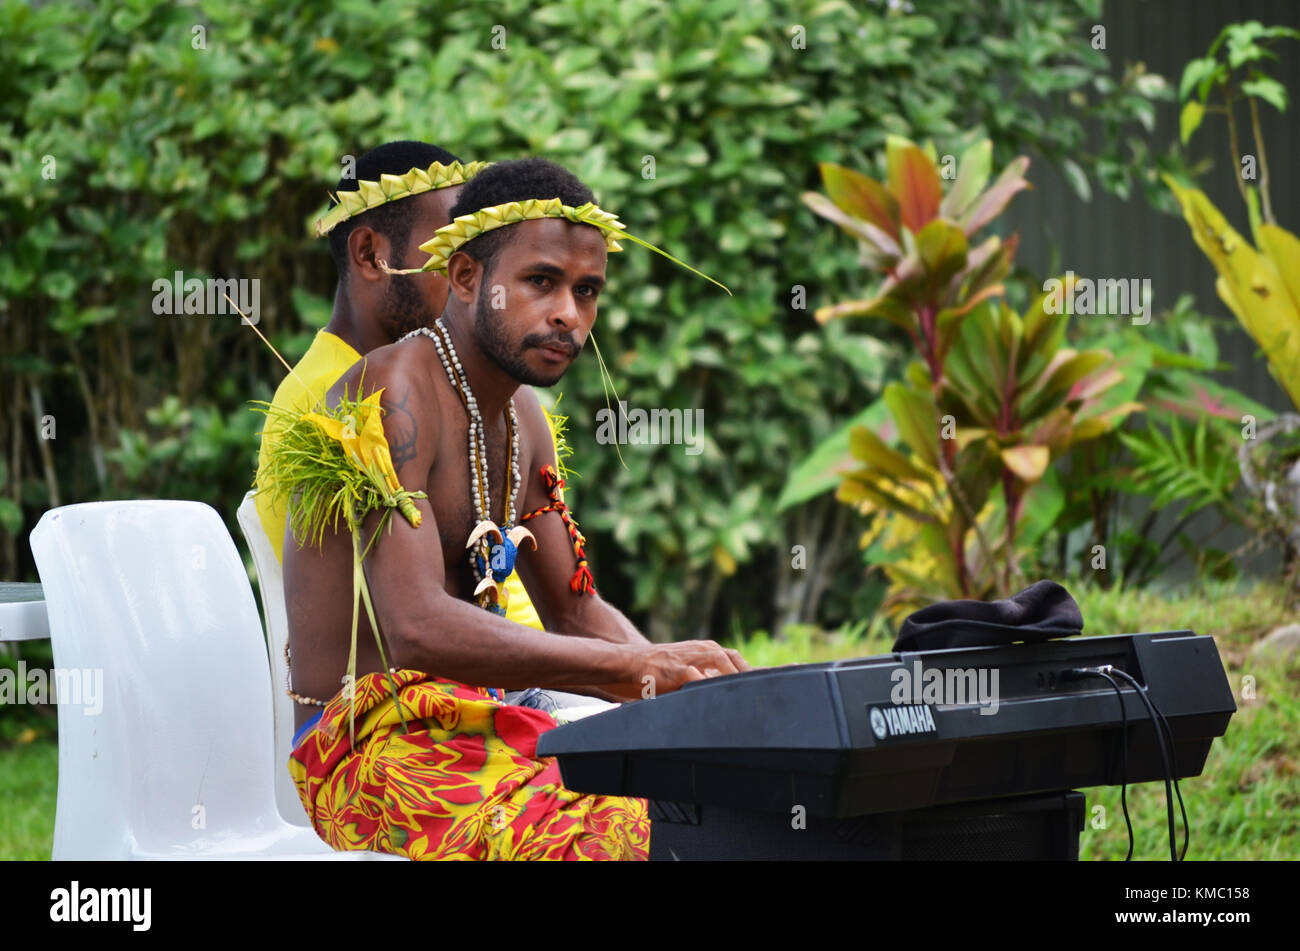 Islanders singing and playing musical instruments taken at Papua New Guinea - Stock Image